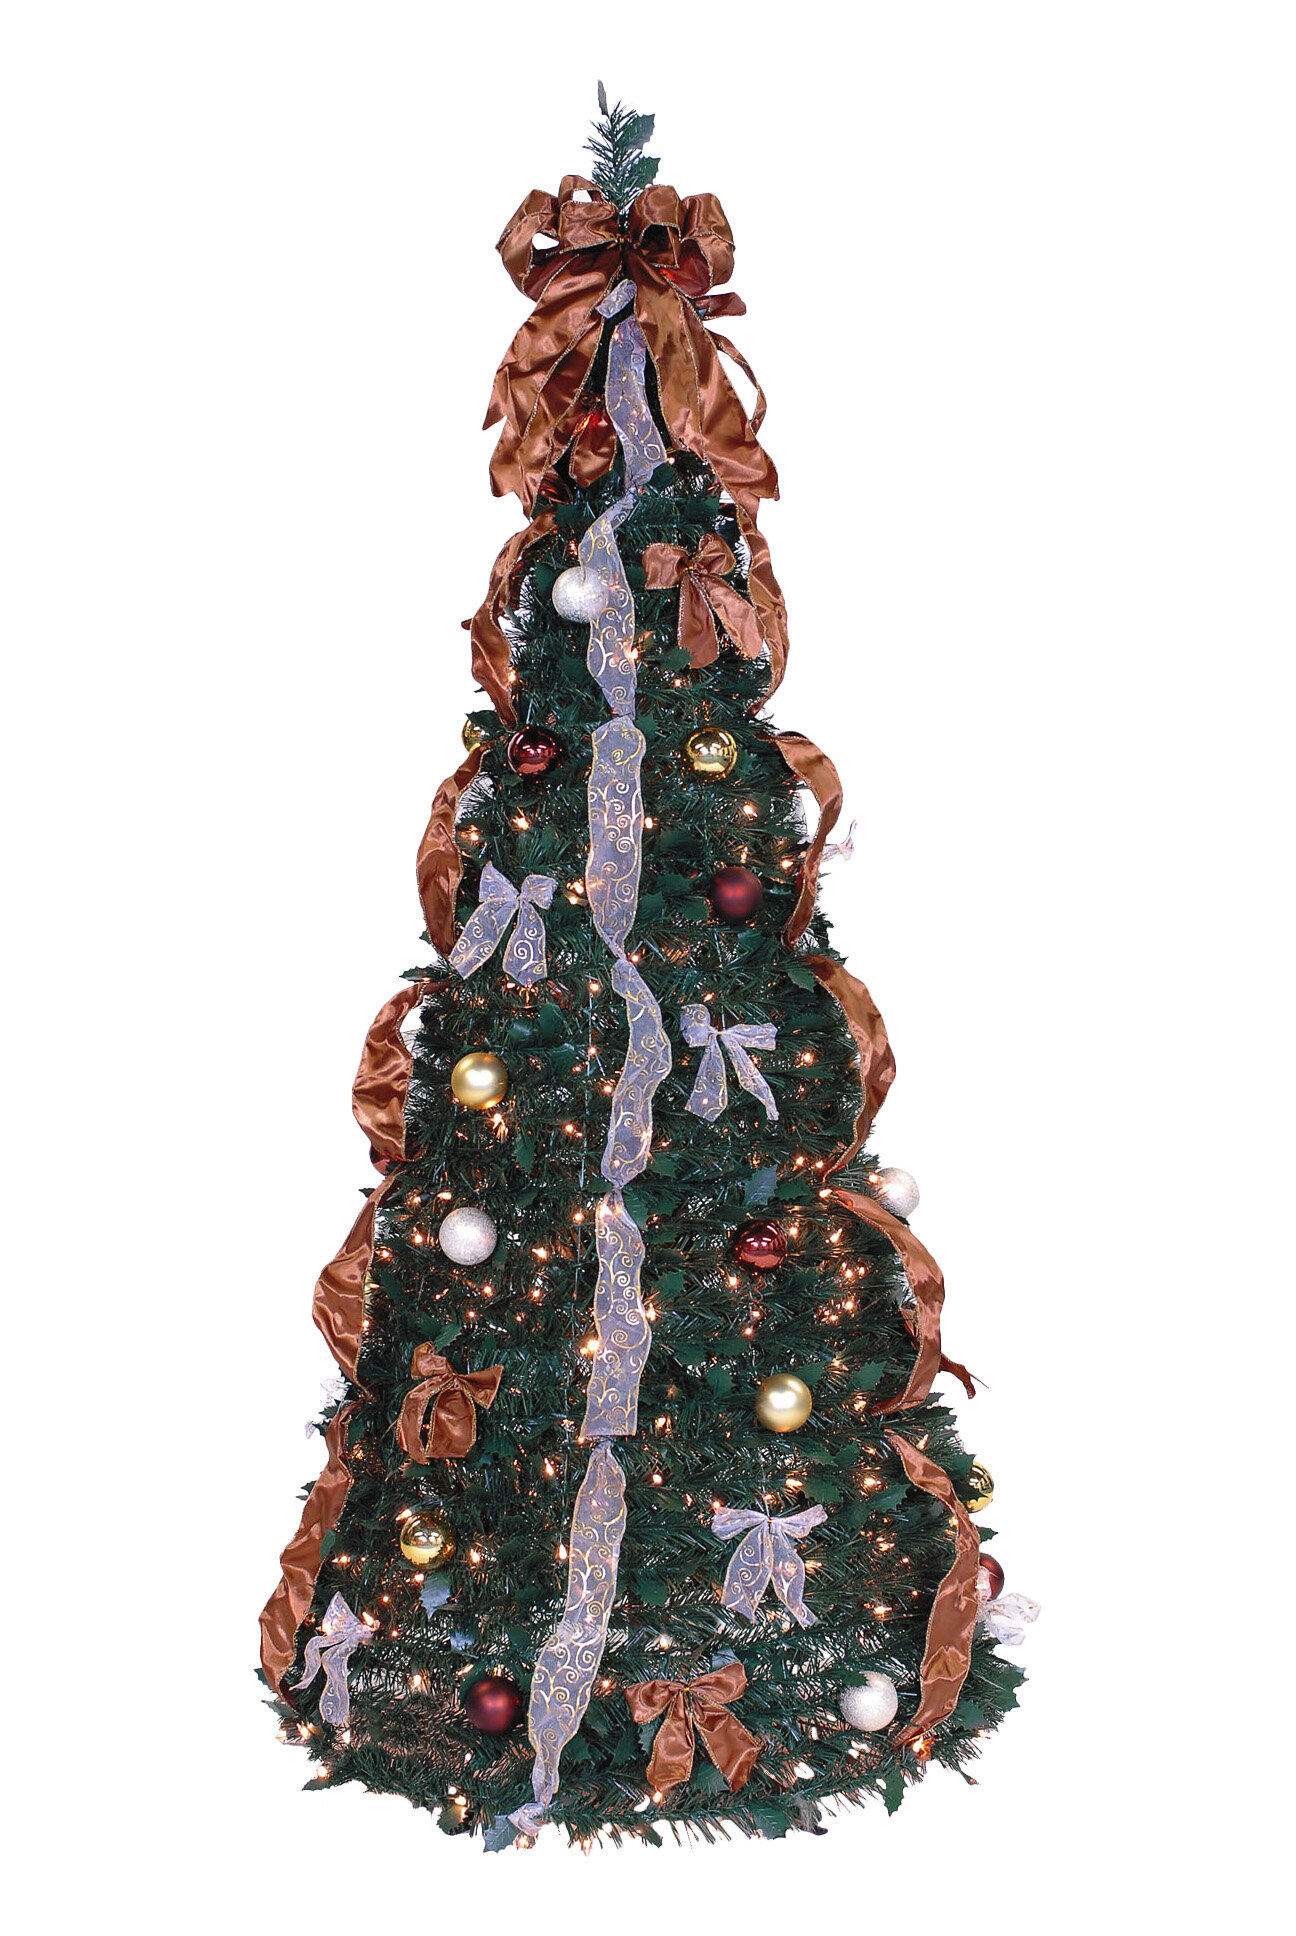 The Holiday Aisle Pop Up 6 Green Artificial Christmas Tree With 350